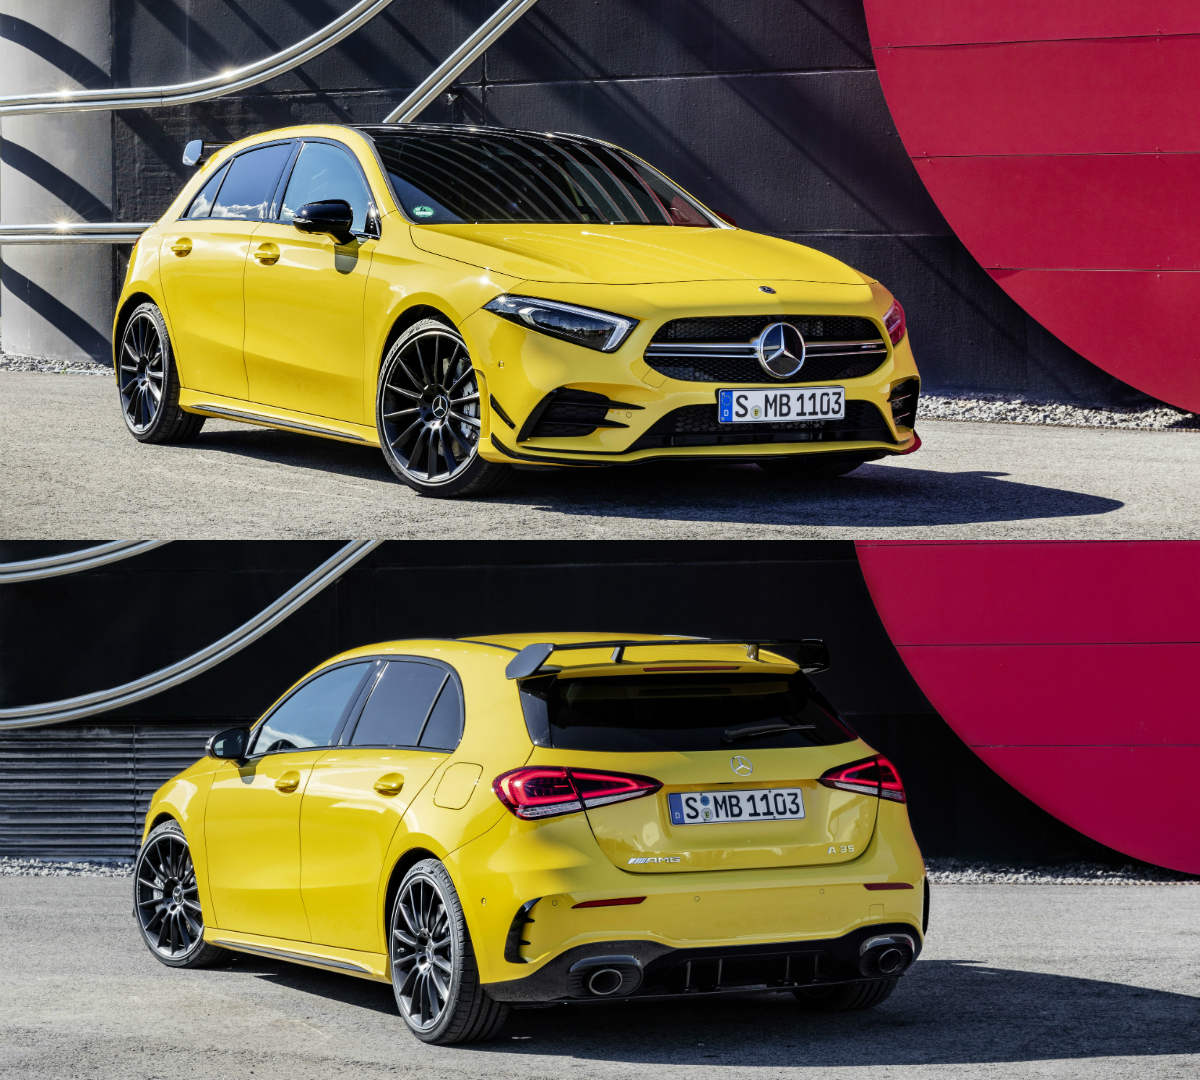 Mercedes-AMG A35 Is New German Hot Hatch With 306hp And 400Nm